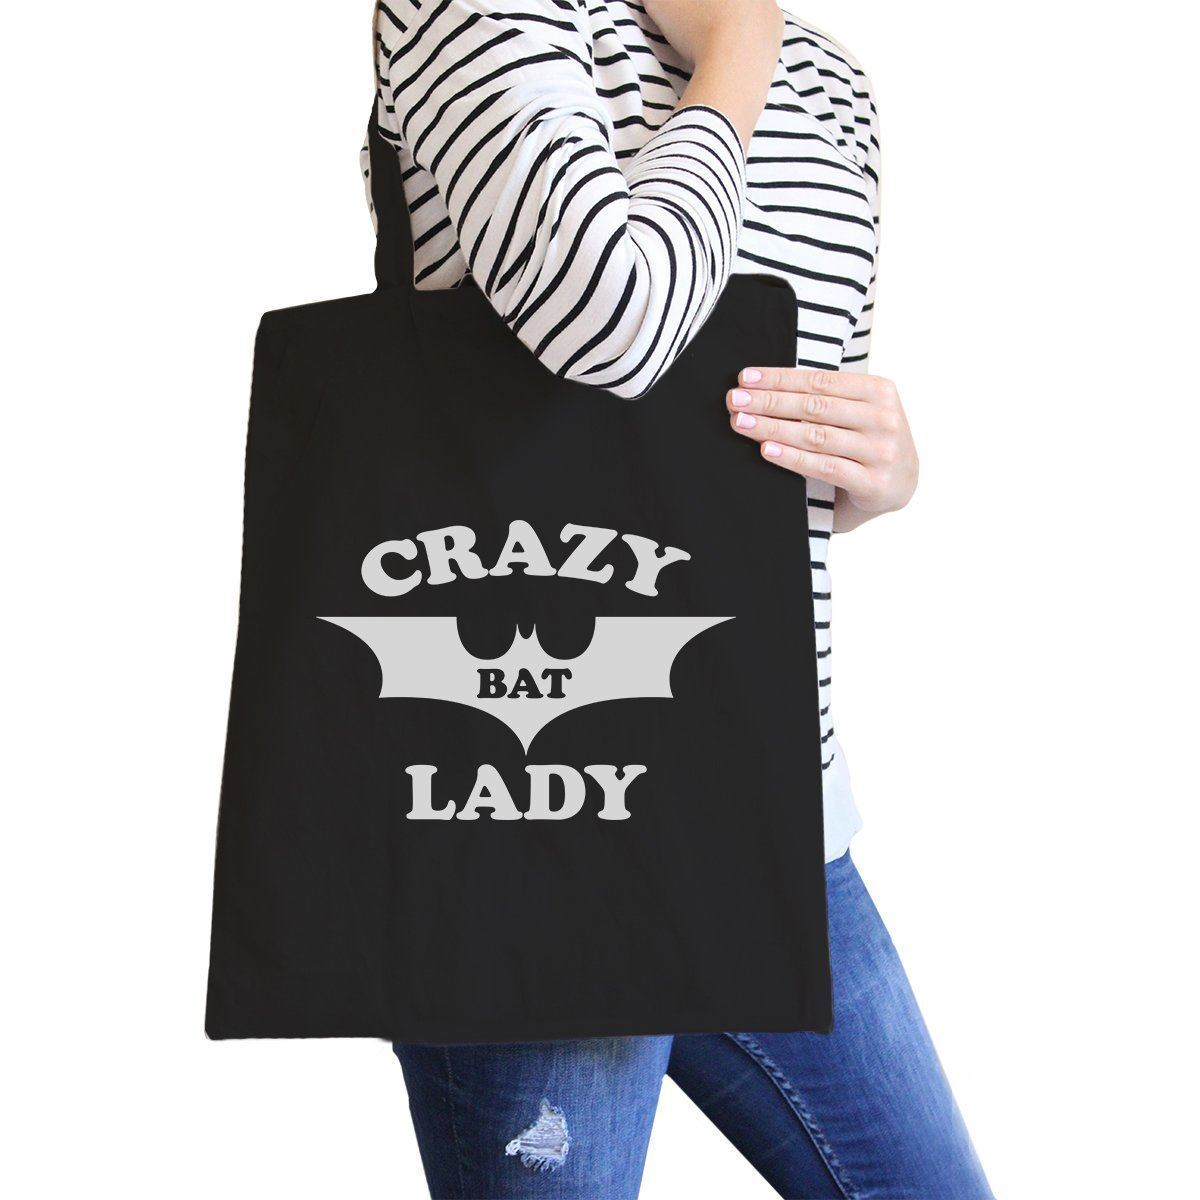 Primary image for Crazy Bat Lady Black Canvas Bags